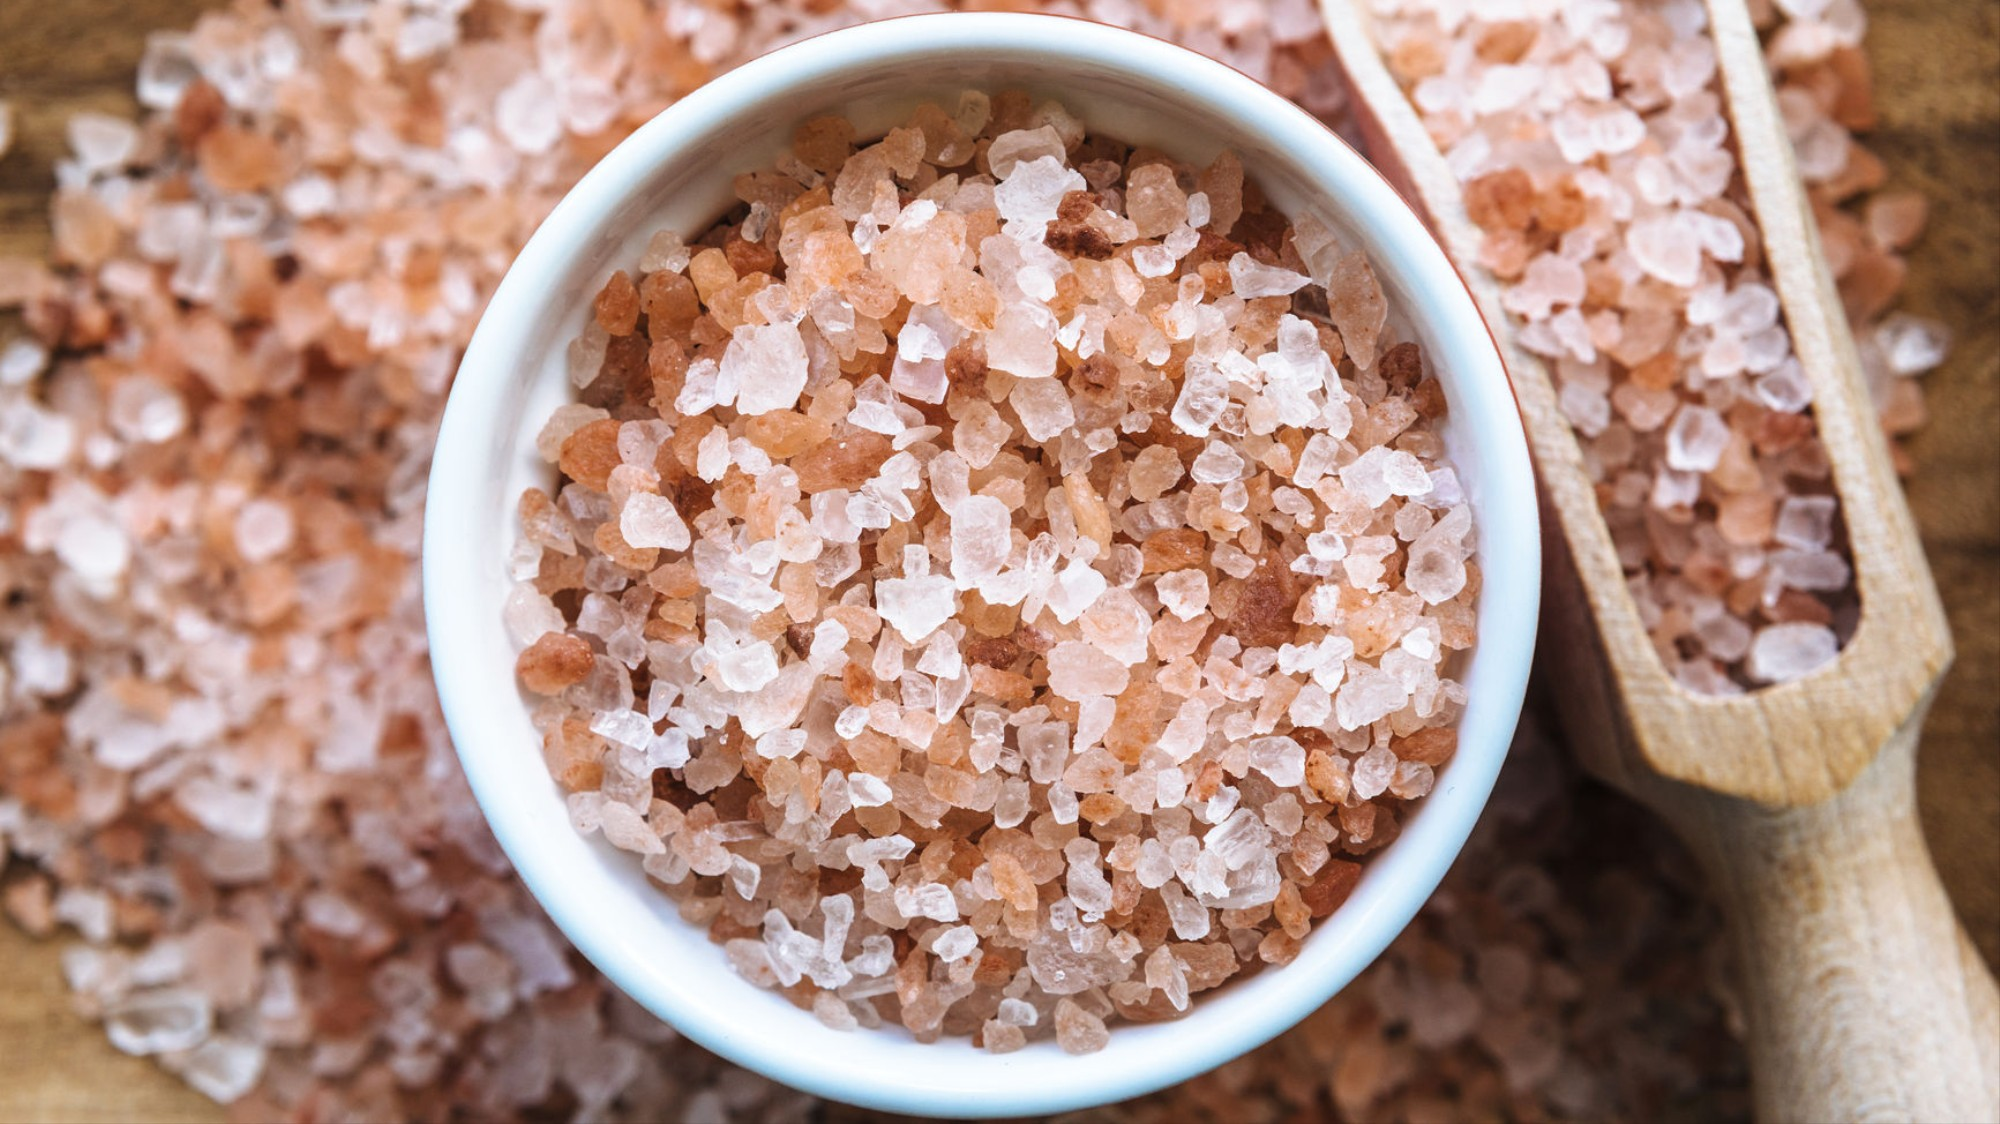 Pink Himalayan Salt Isn't Good For You, It's Waste of Money